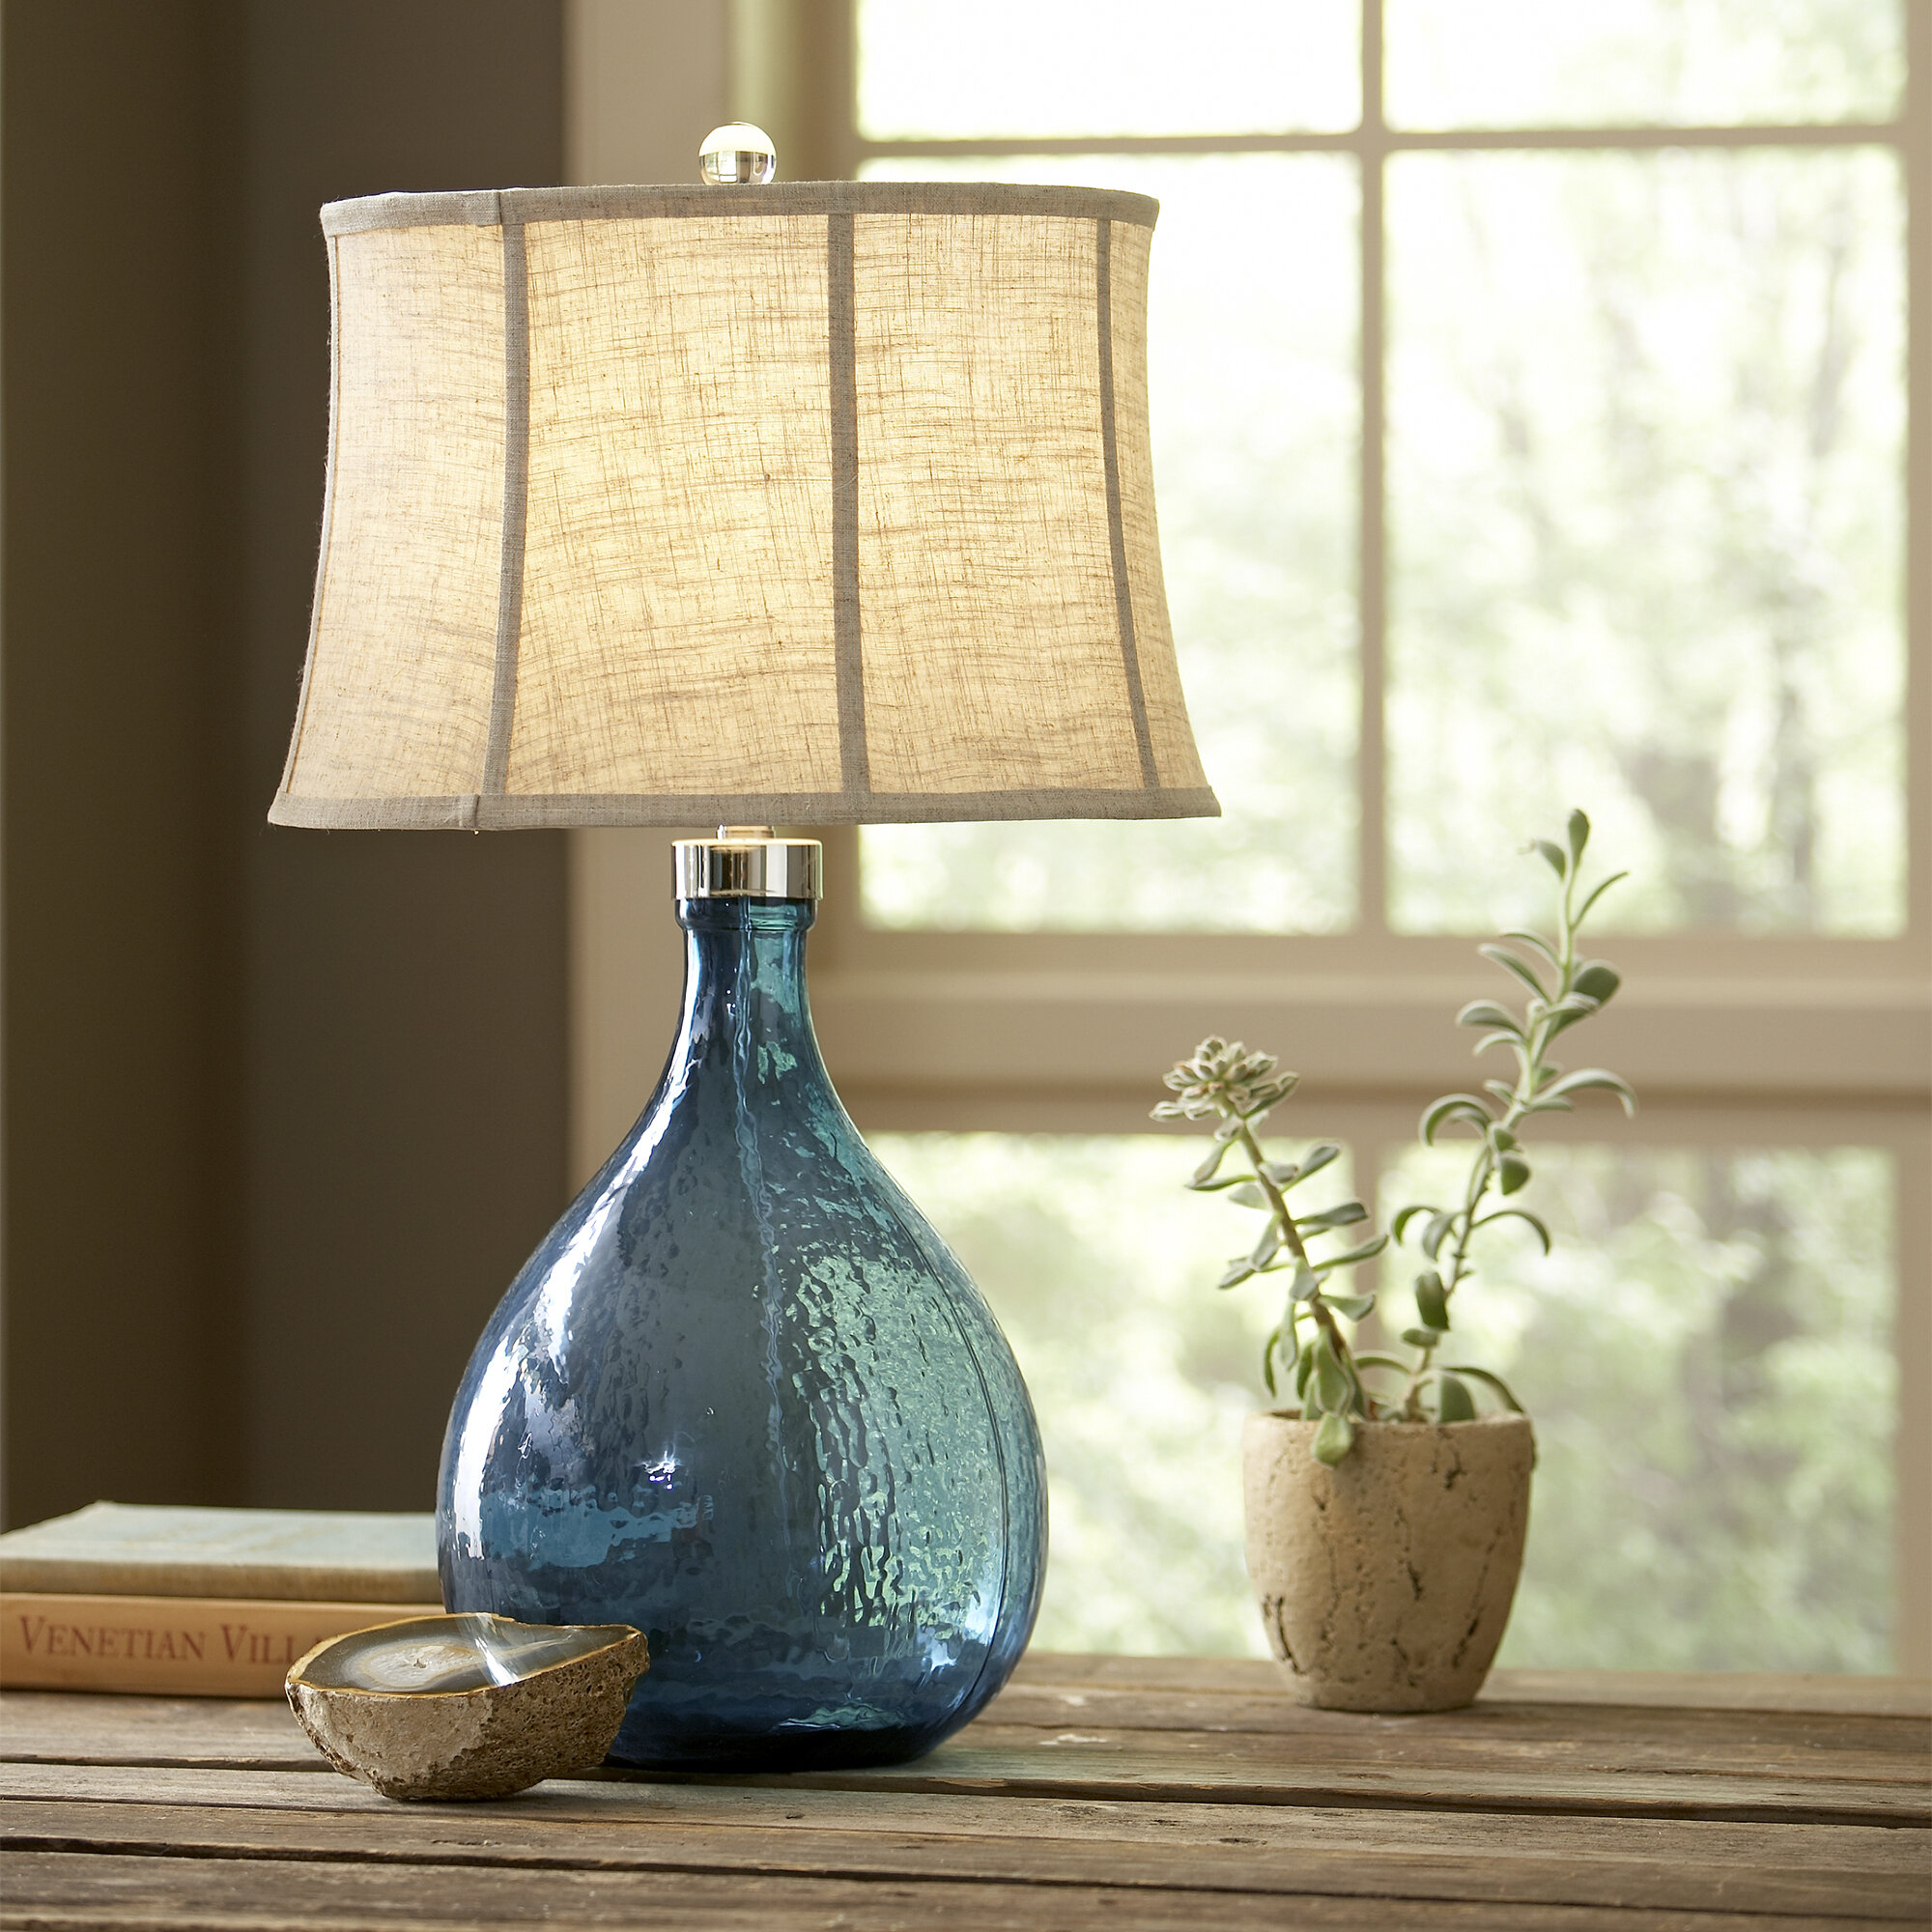 birch pdp wallington glass lane reviews table lamps lighting lamp